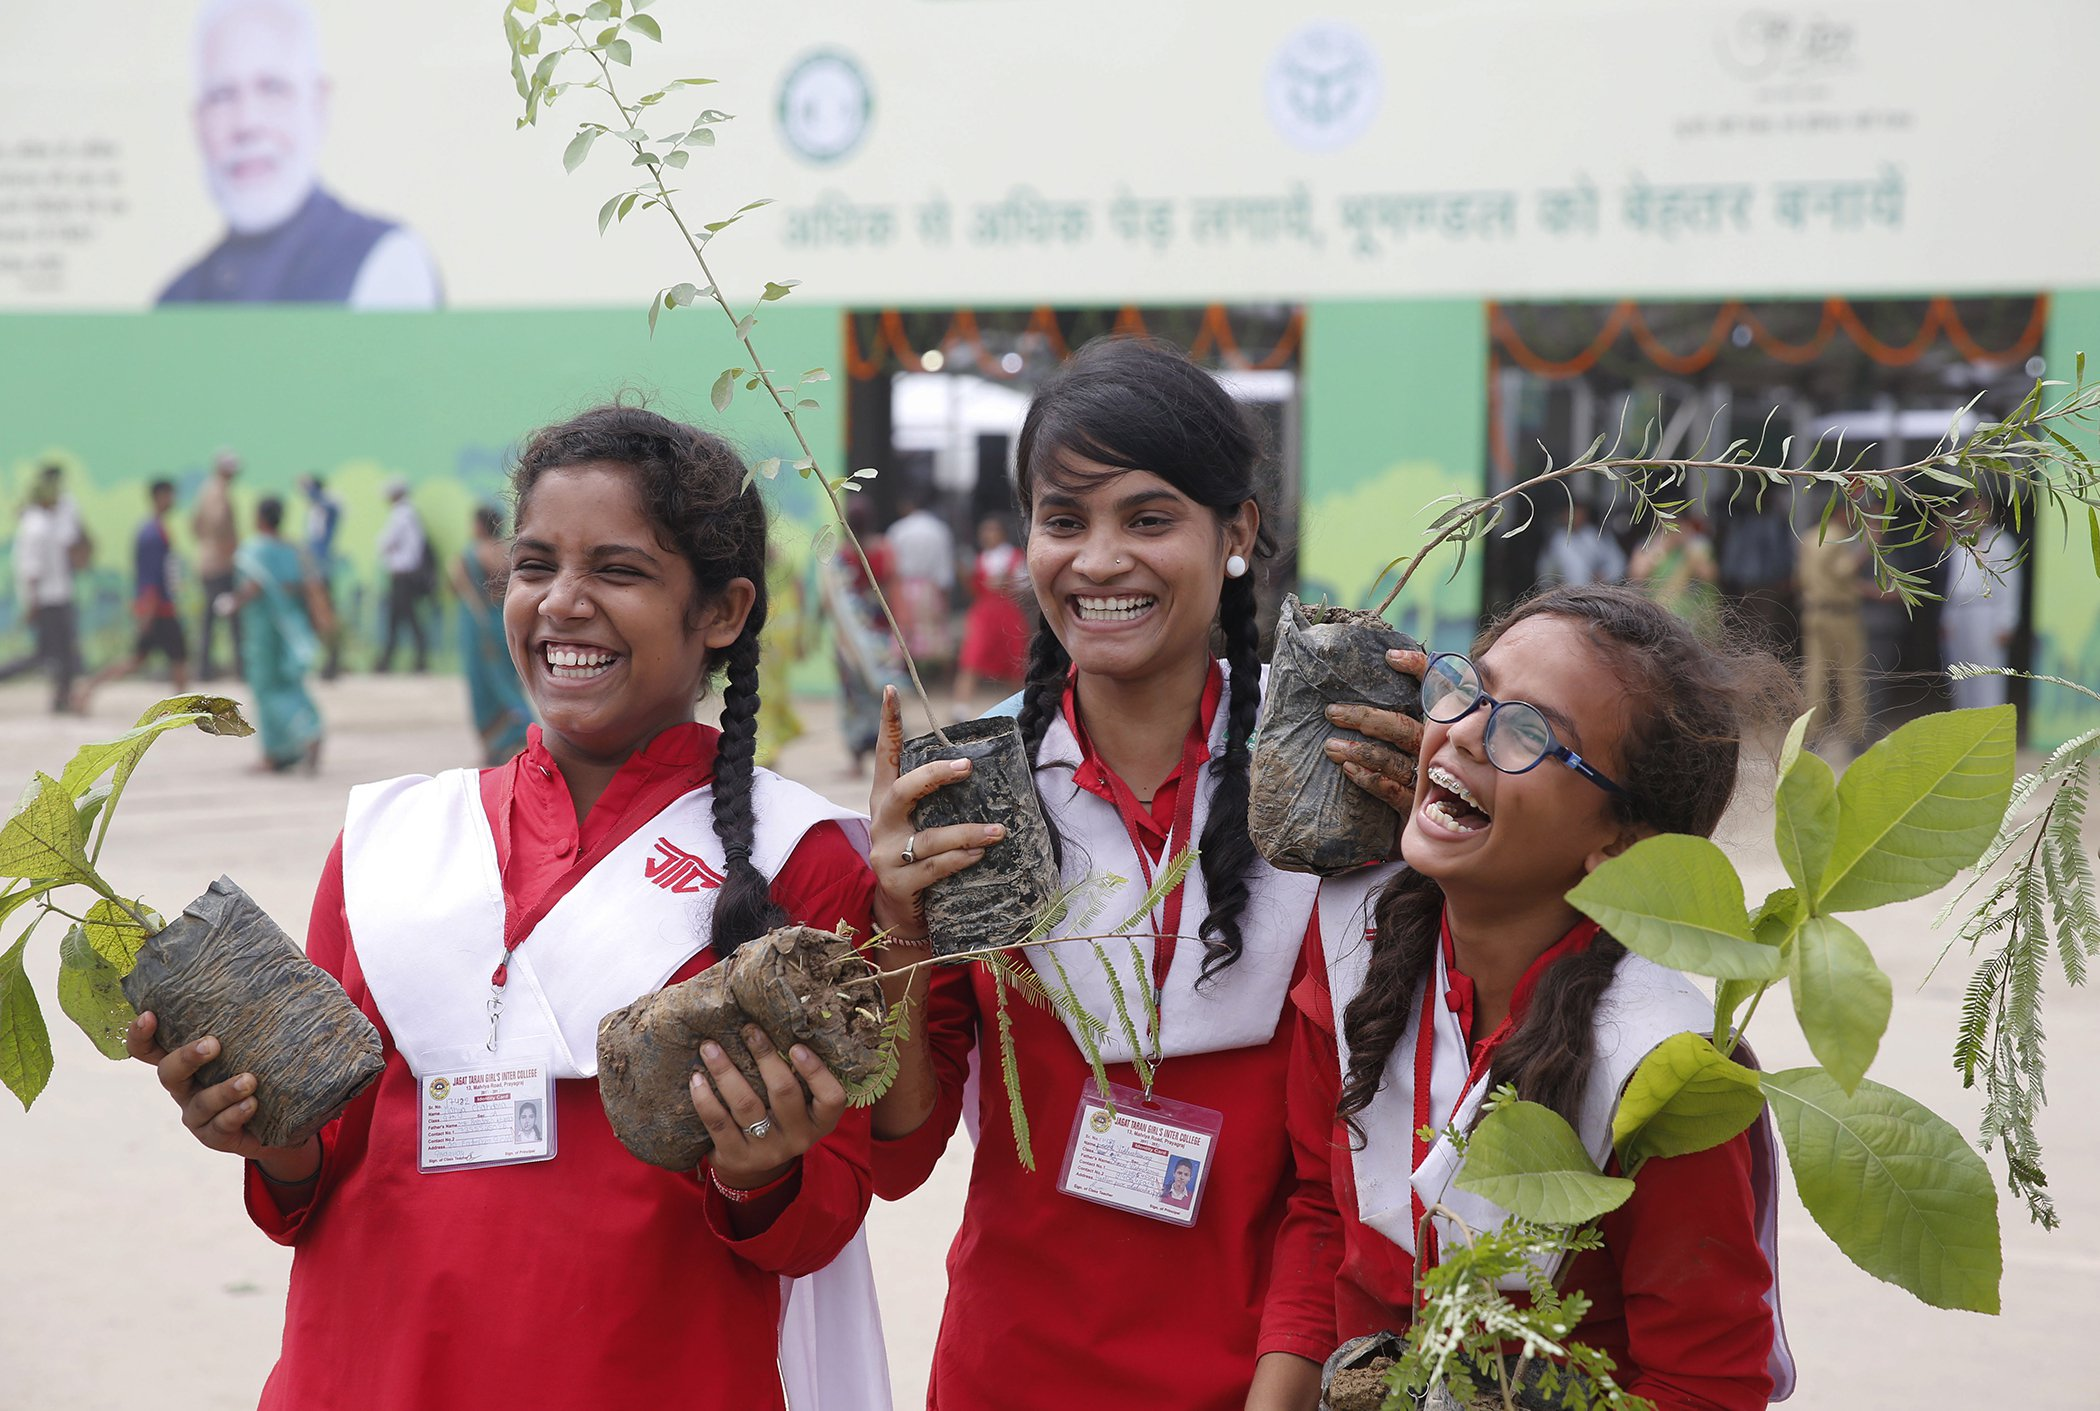 India-Tree-Planing-Environment-Climate.jpg